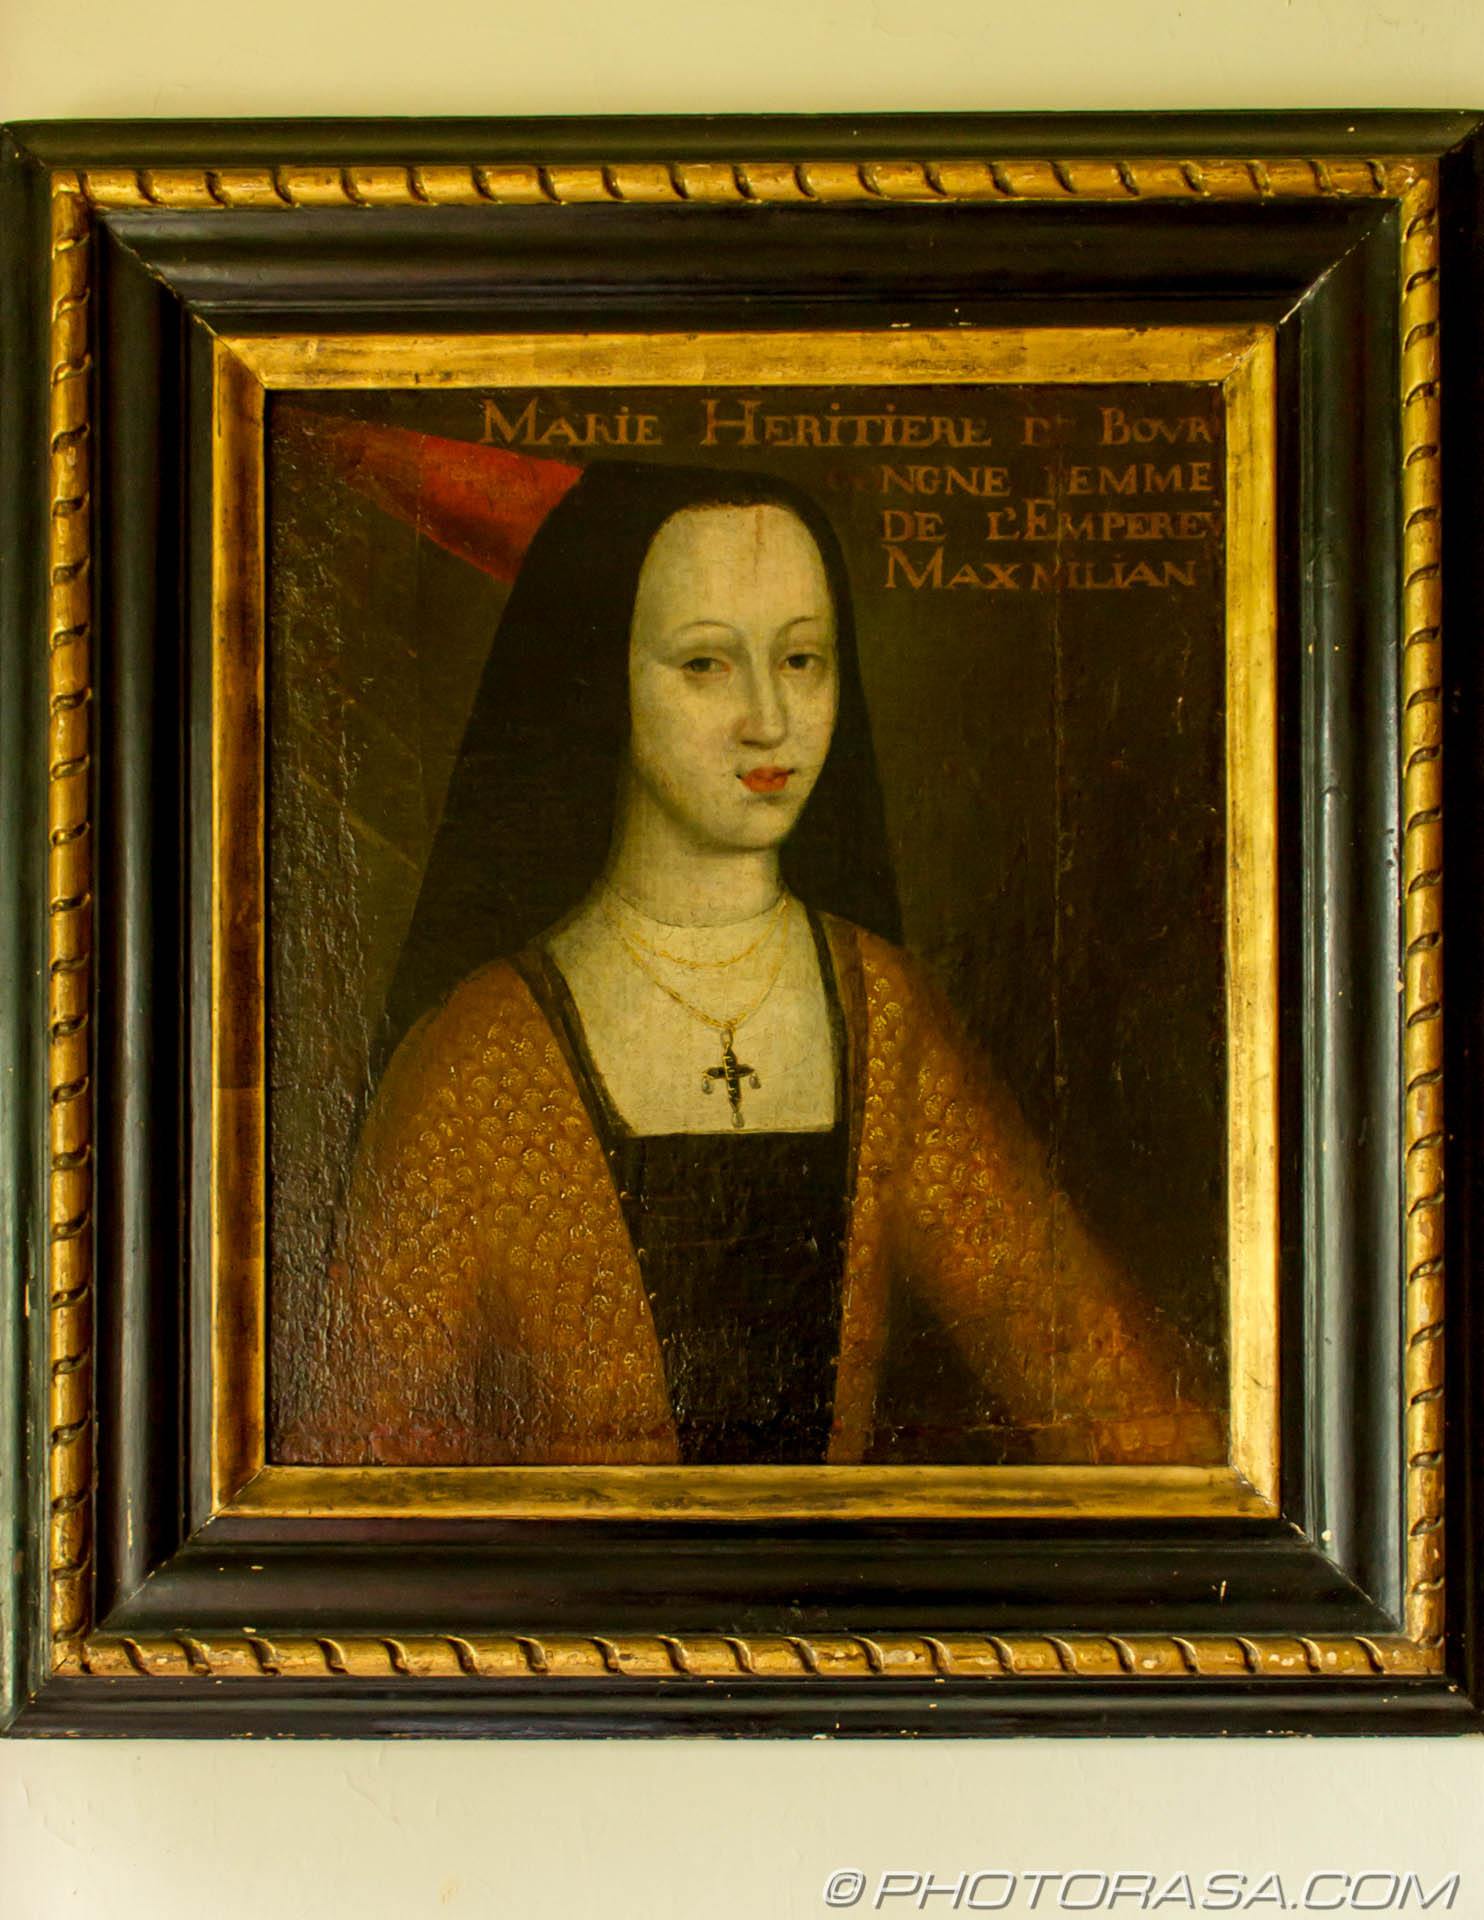 http://photorasa.com/stoneacre-house-paintings/early-tudor-painting-of-mary-duchess-of-burgundy/